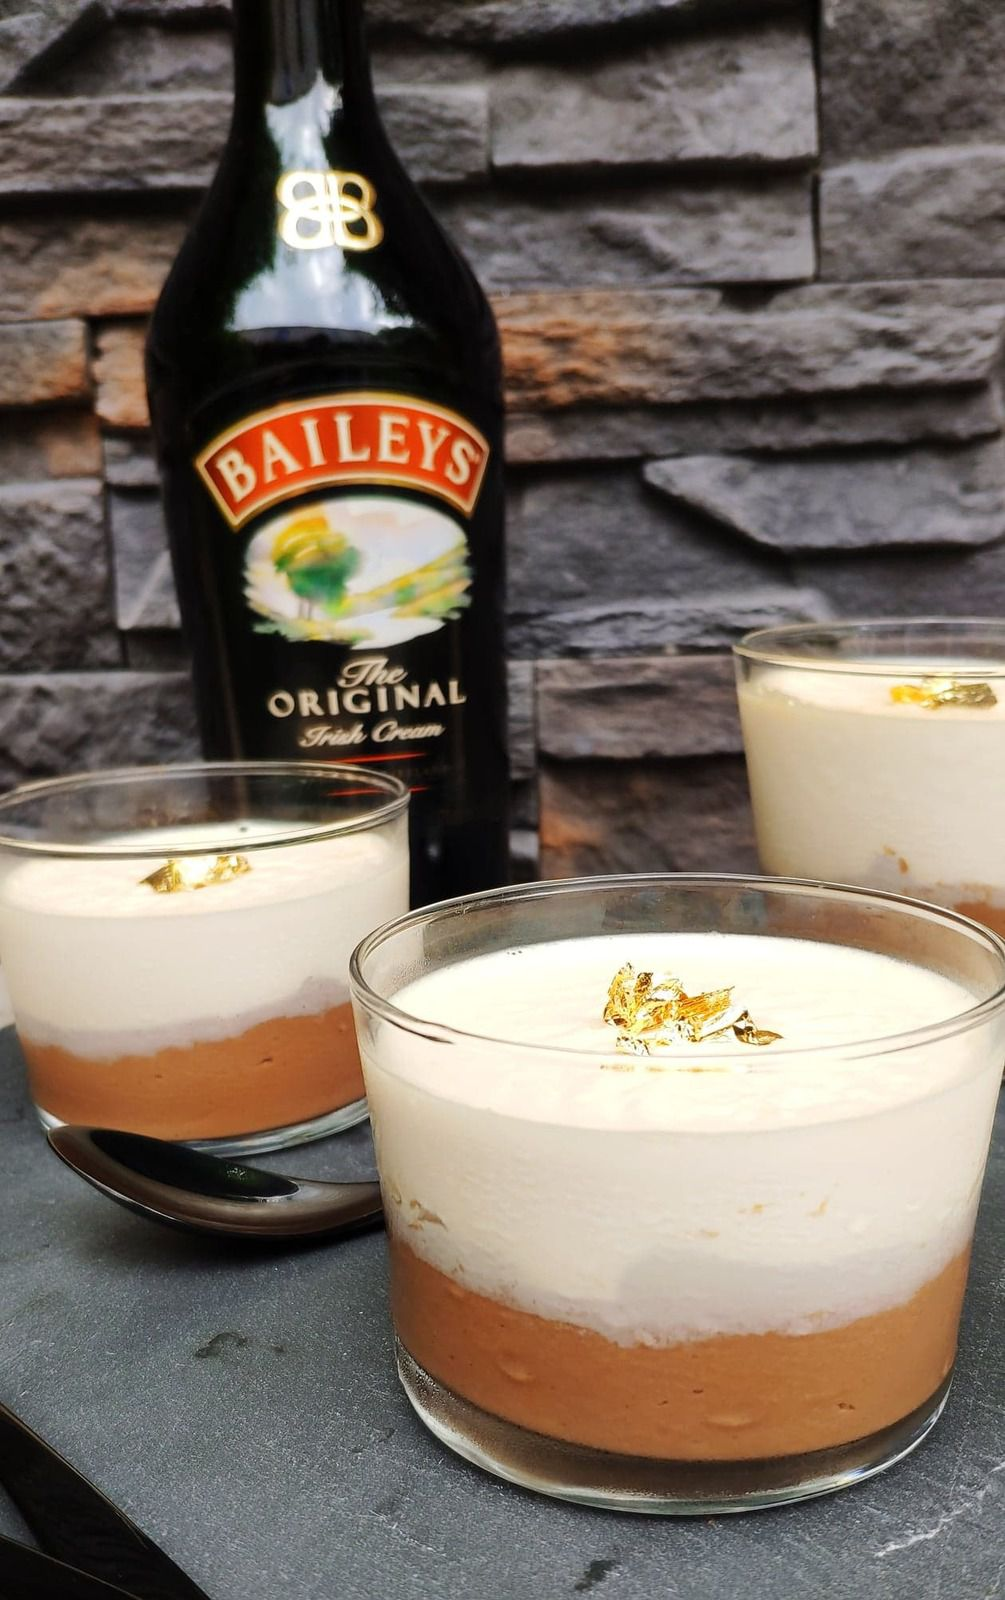 PANNA COTTA AU BAILEY'S